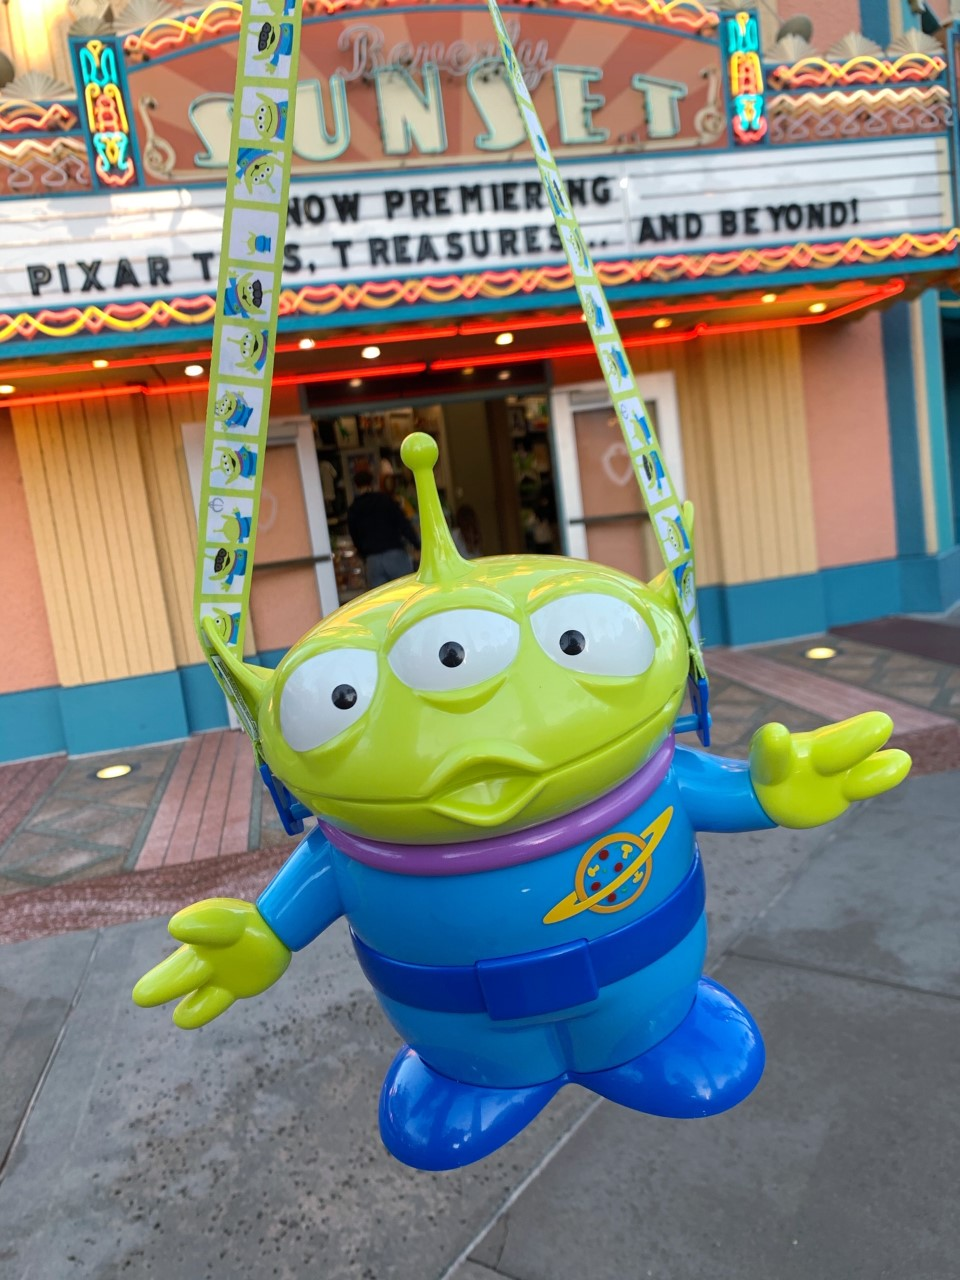 Toy Story Green Alien Popcorn Bucket